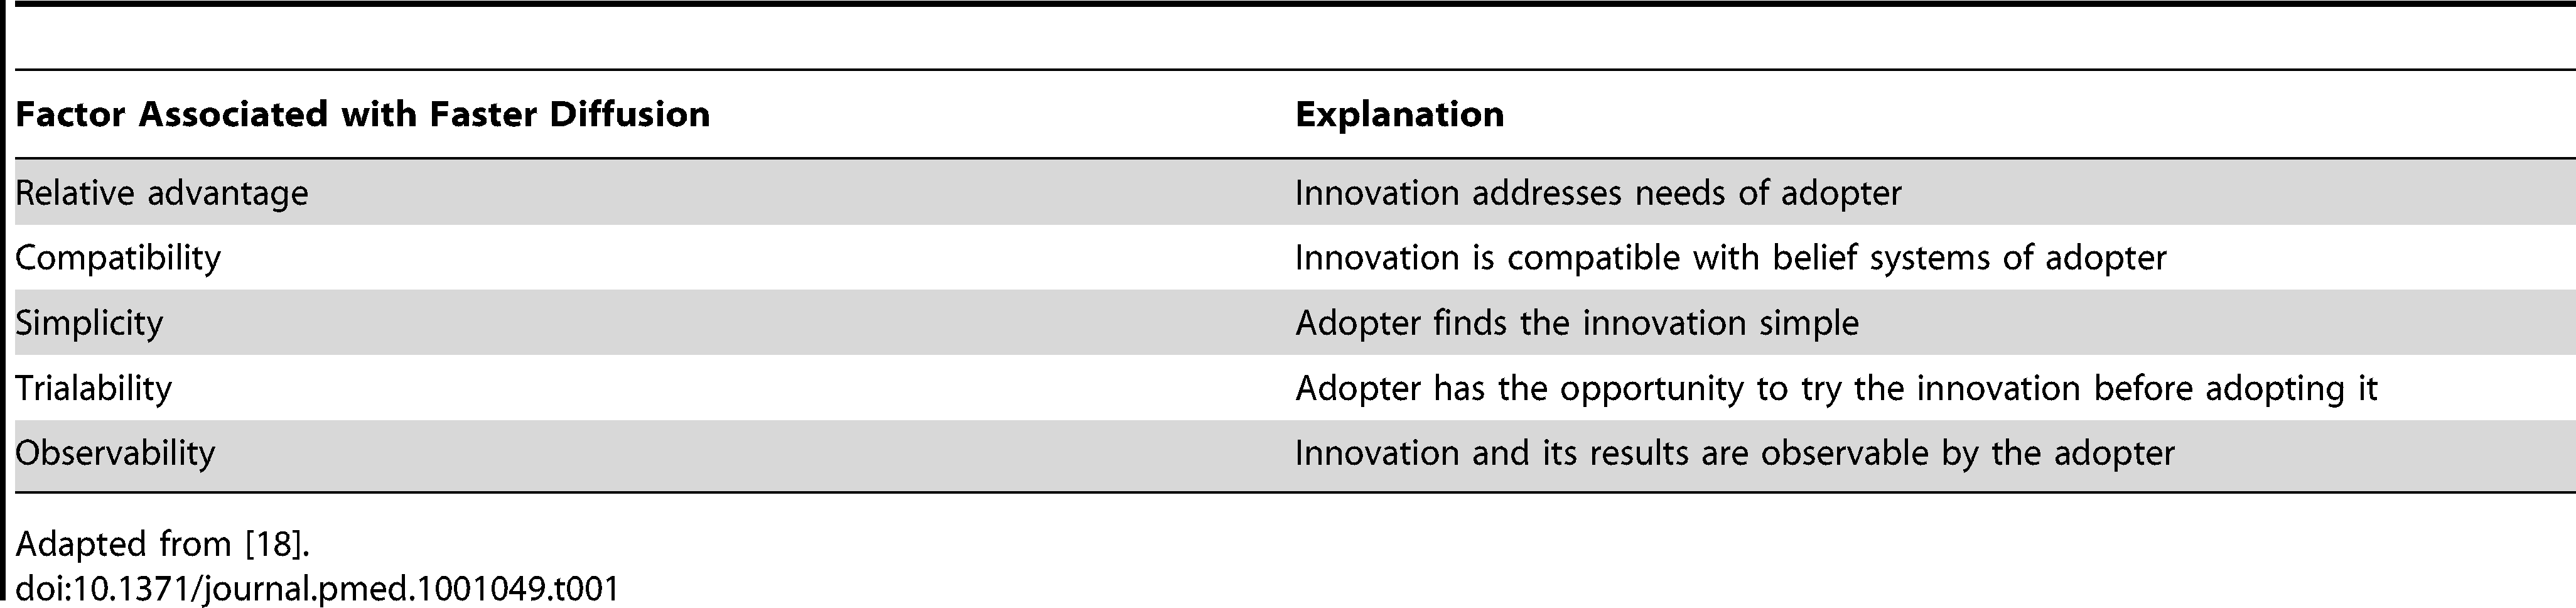 Factors associated with faster diffusion of an innovation.